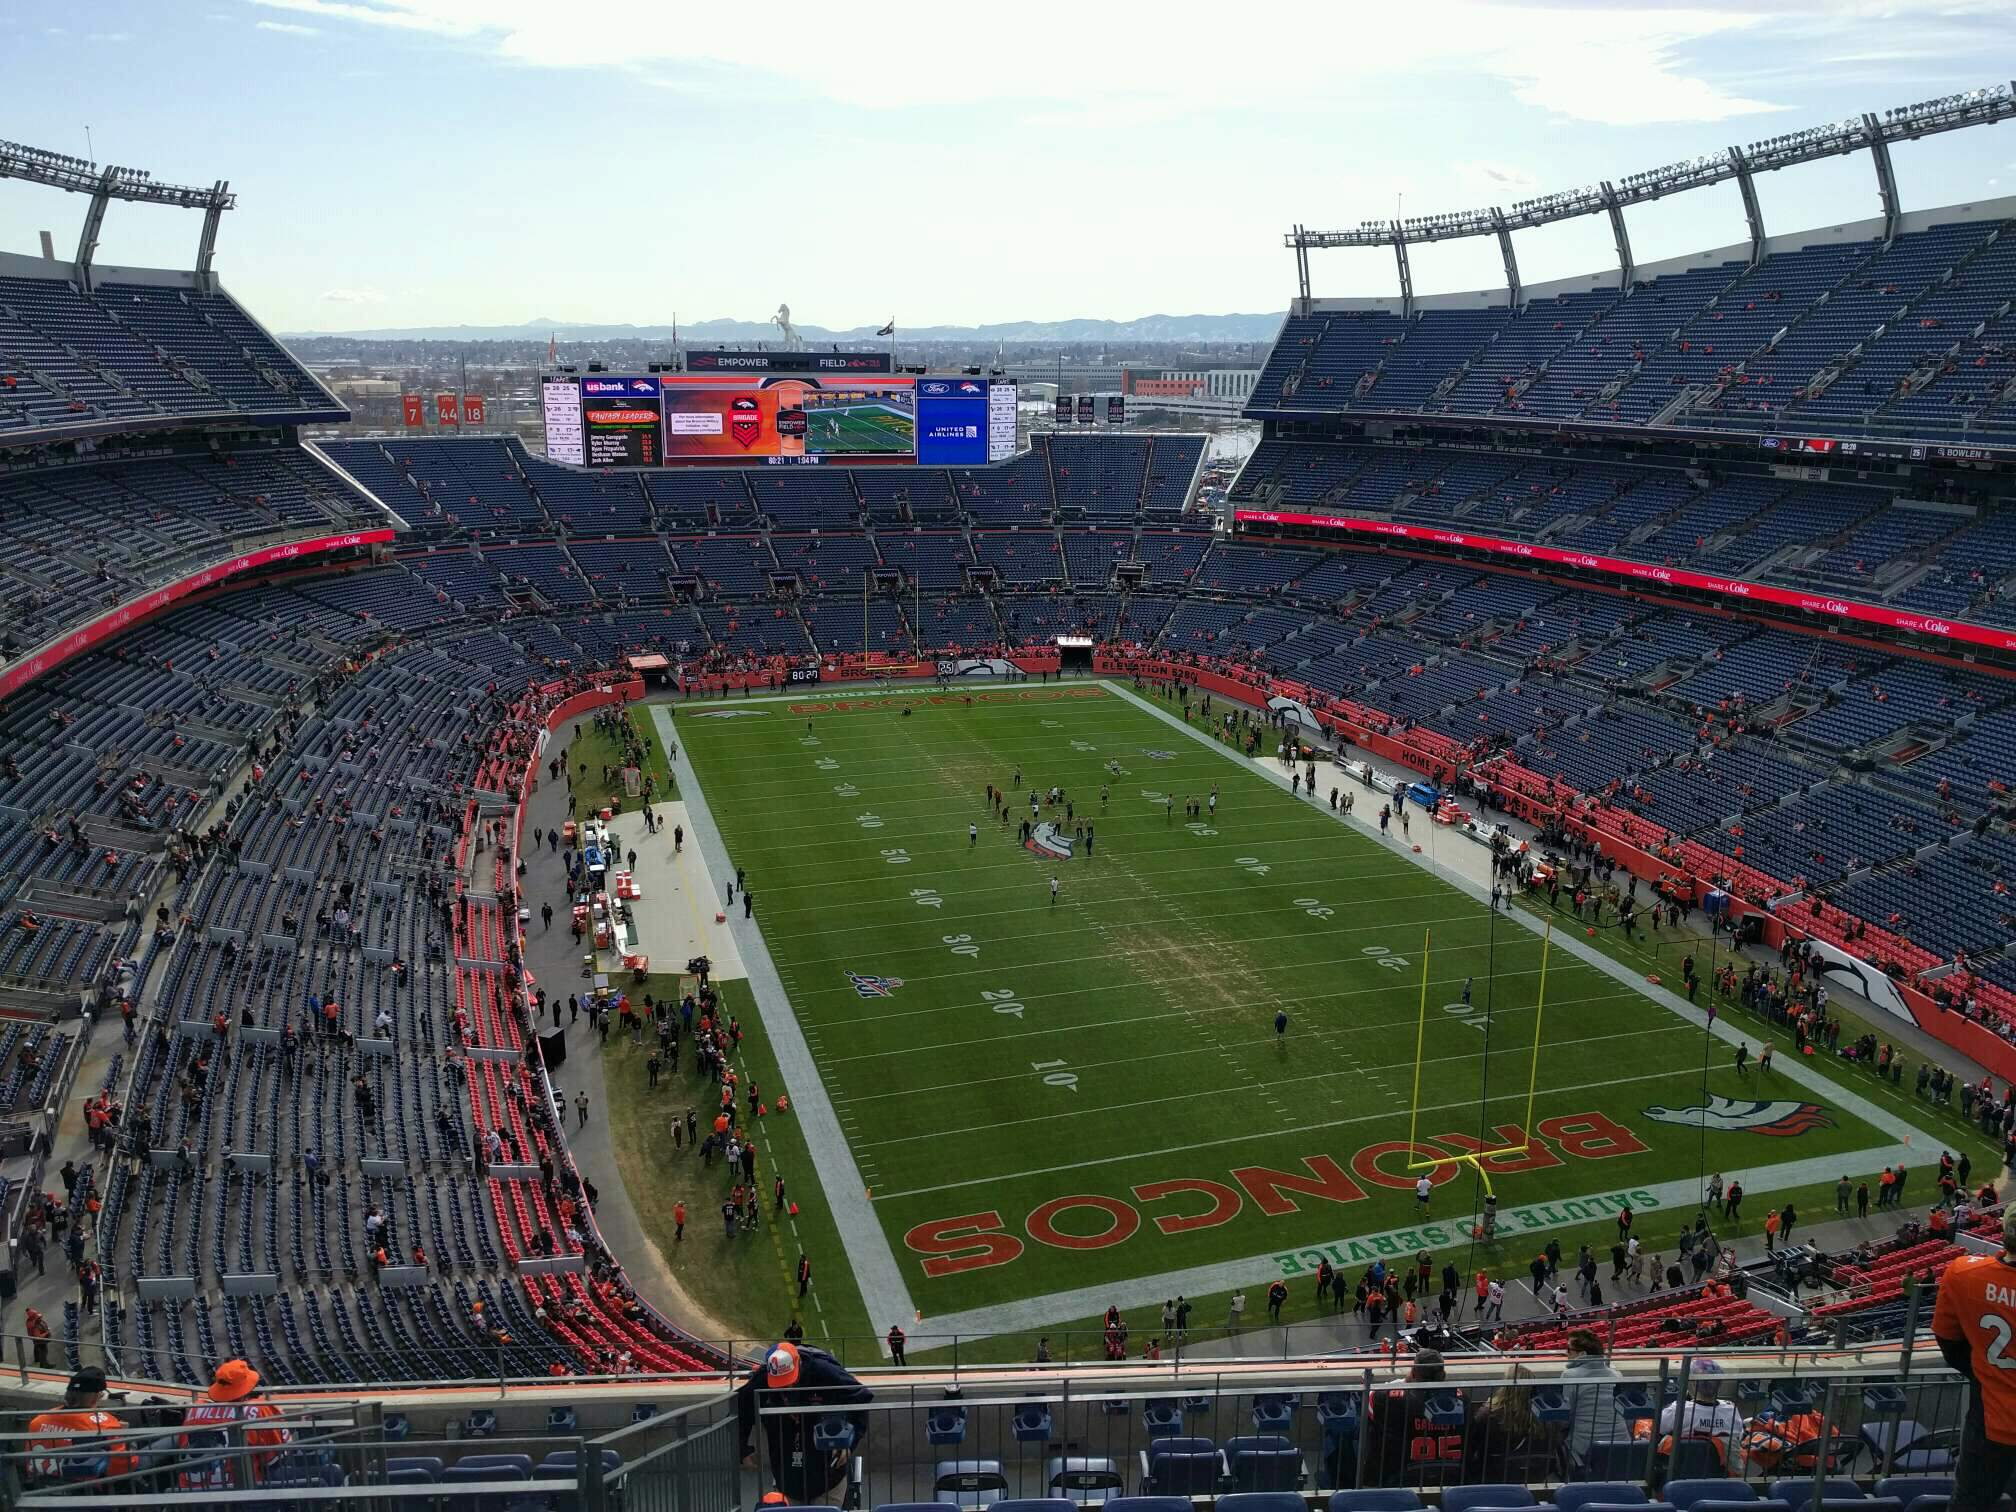 Empower Field at Mile High Stadium Section 524 Rangée 11 Siège 10